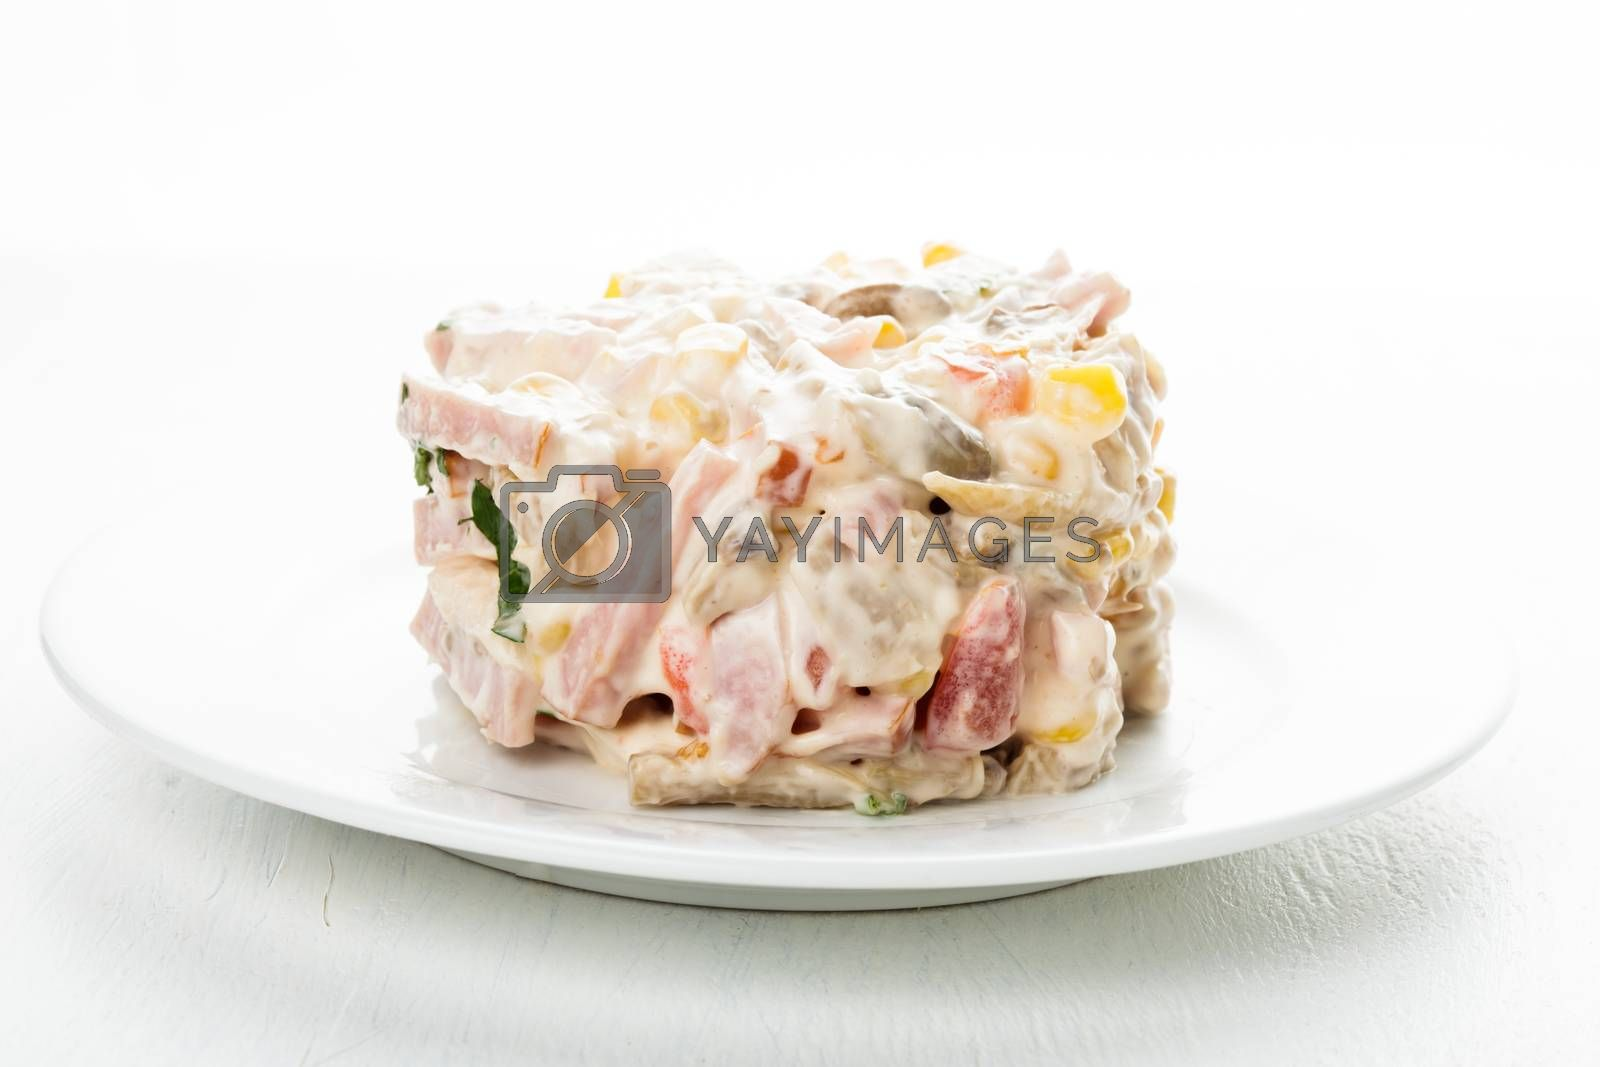 Portion of salad with ham, meat, mushrooms, vegetables and mayonnaise